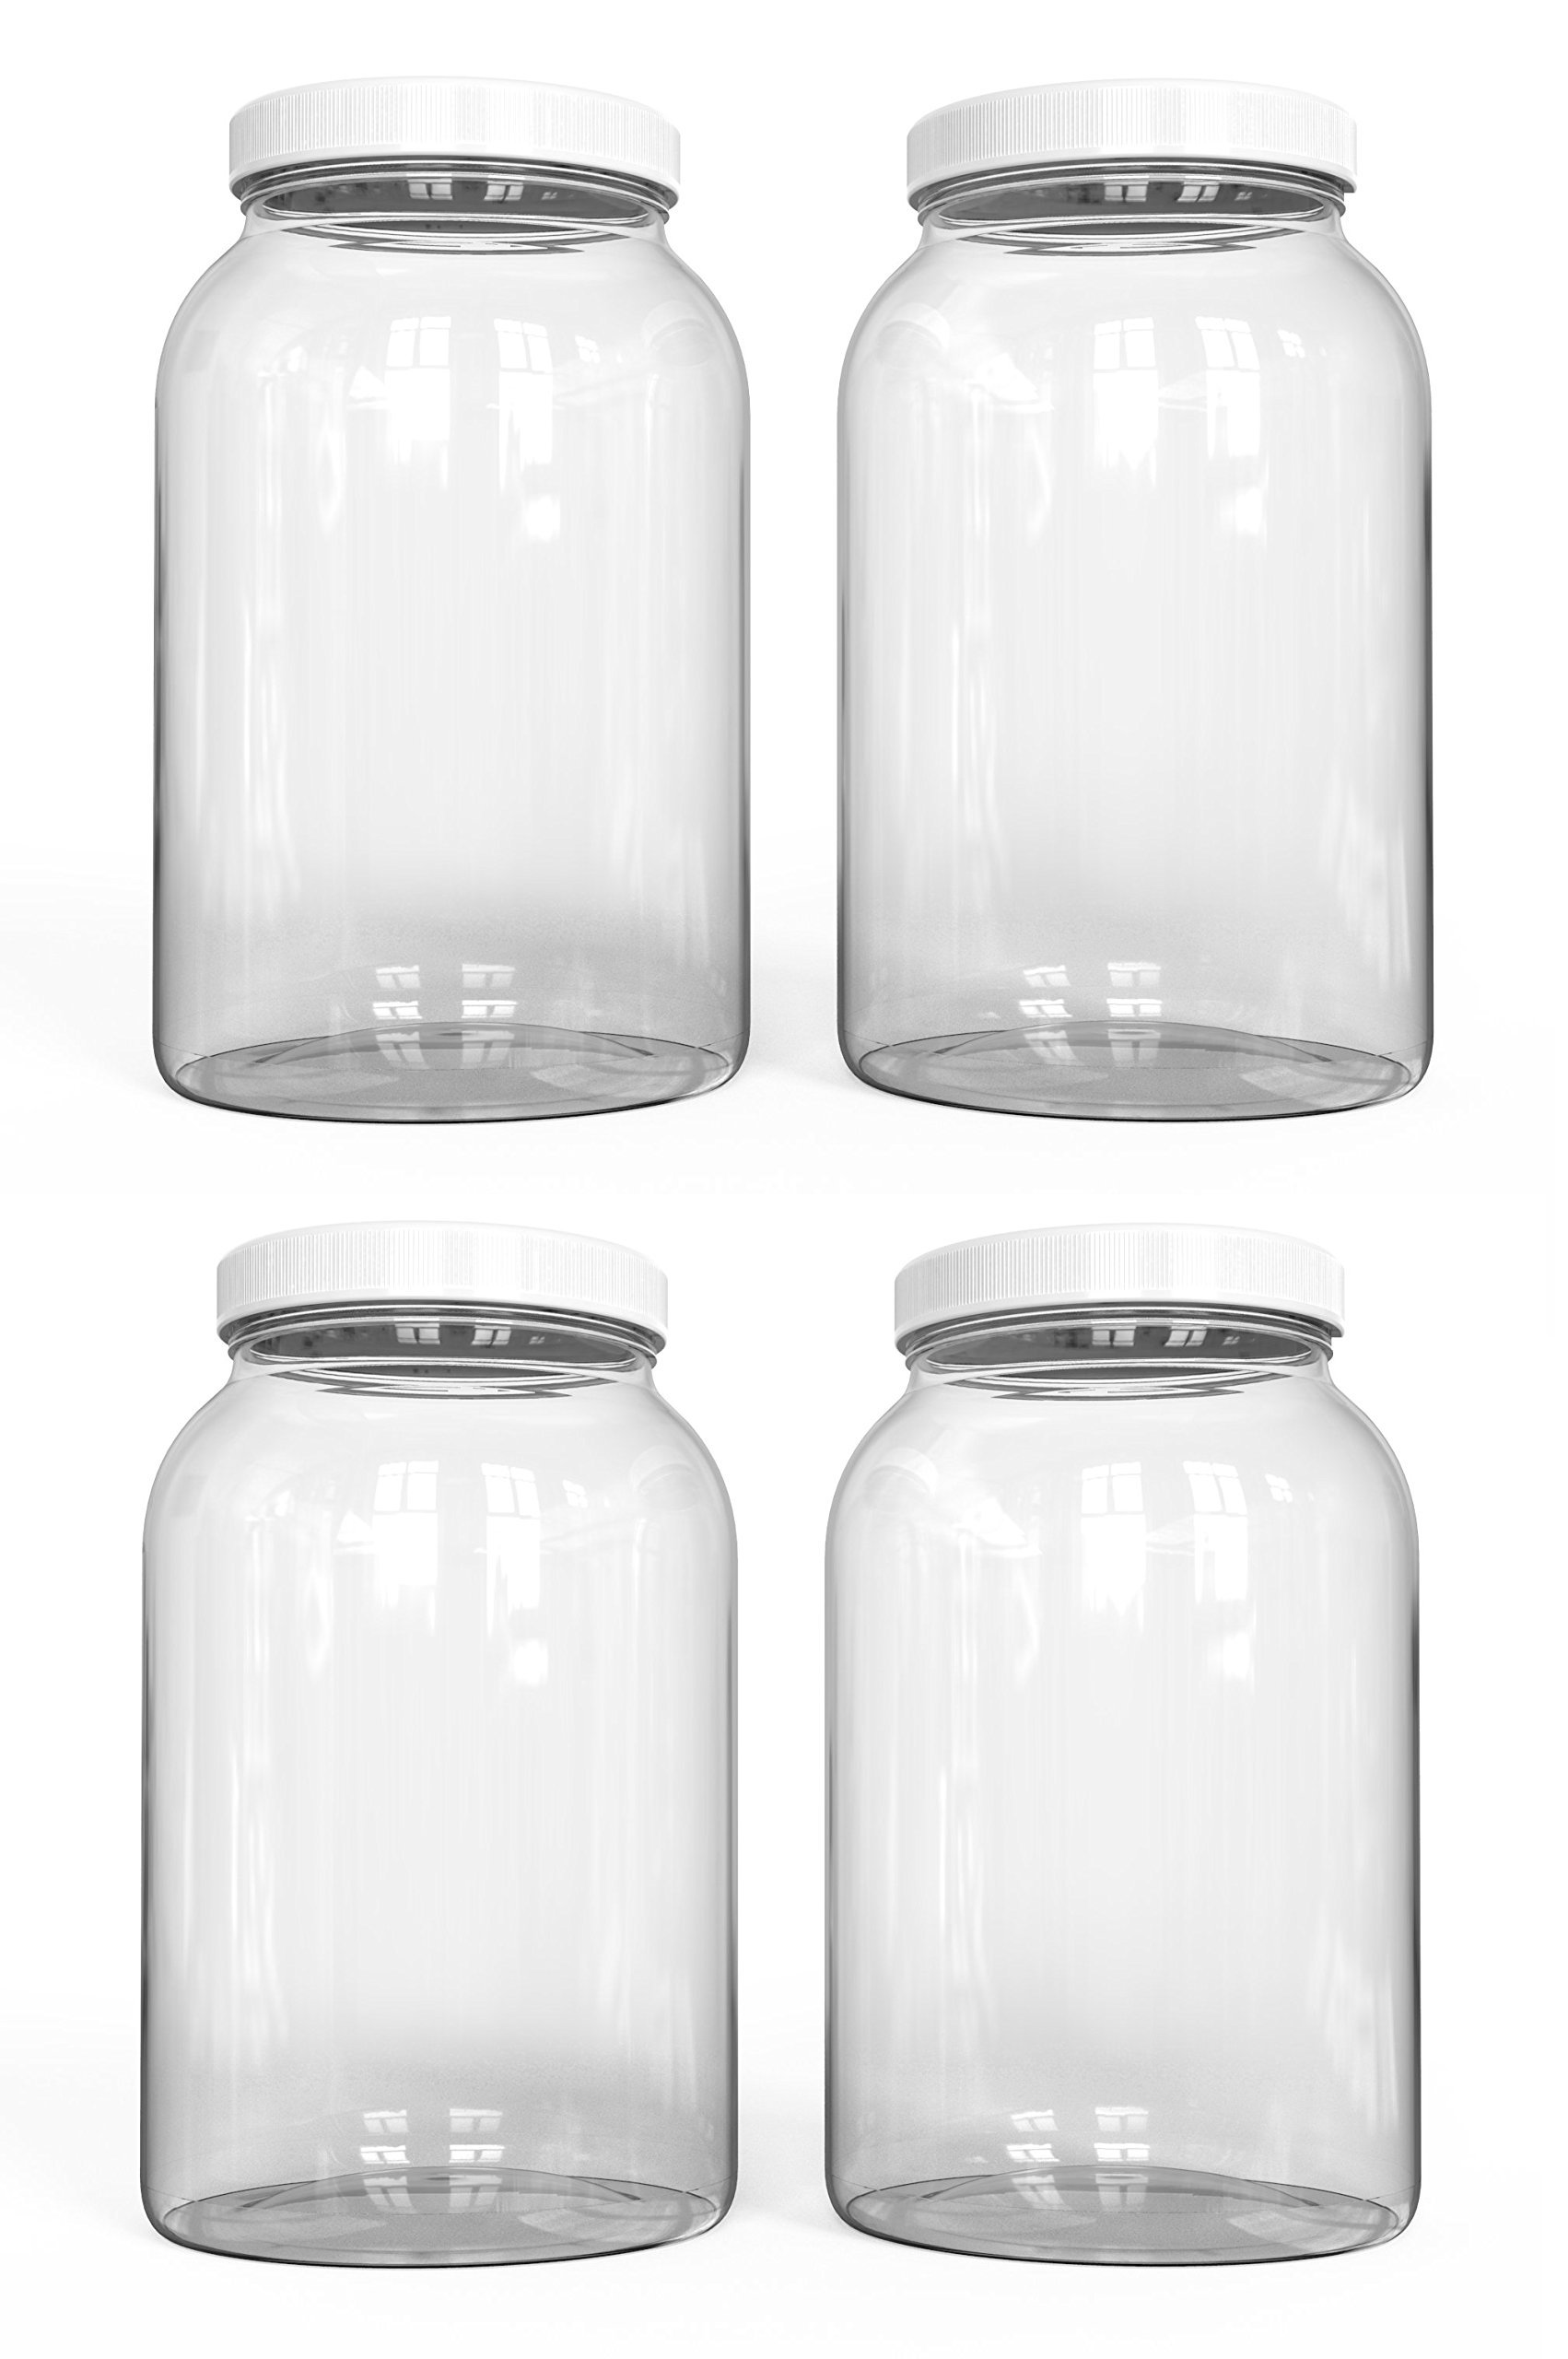 KombuJars 1 Gallon Glass Jar (4 Pack) Airtight Lined Seal Plastic Lid Cap, Wide Mouth Jars, Brewing Fermenting Kombucha, Storage Bottles Kefir Canning, Clear, Multi-use